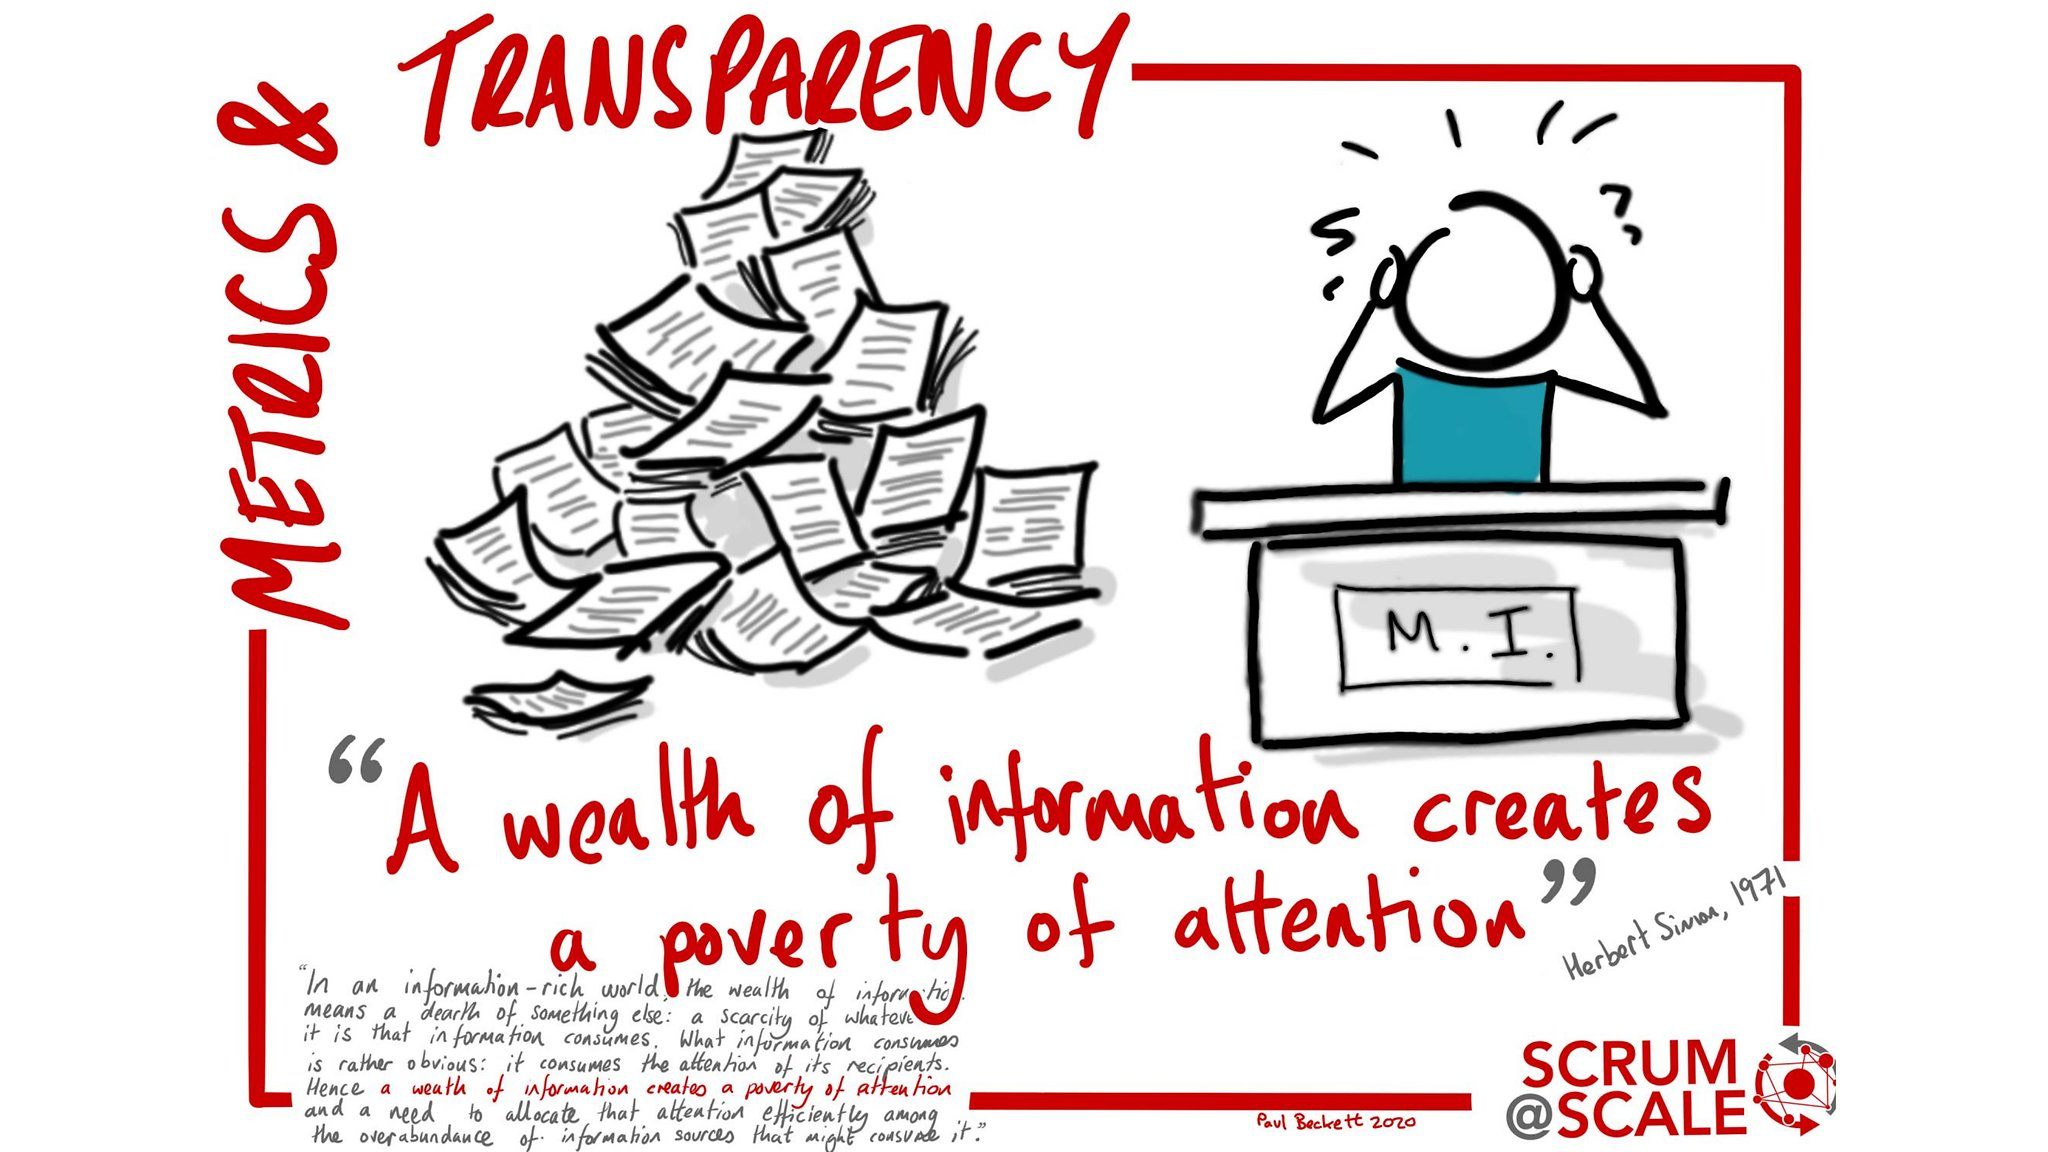 A wealth of information creates a poverty of attention | Metrics & Transparency - Scrum@Scale Component